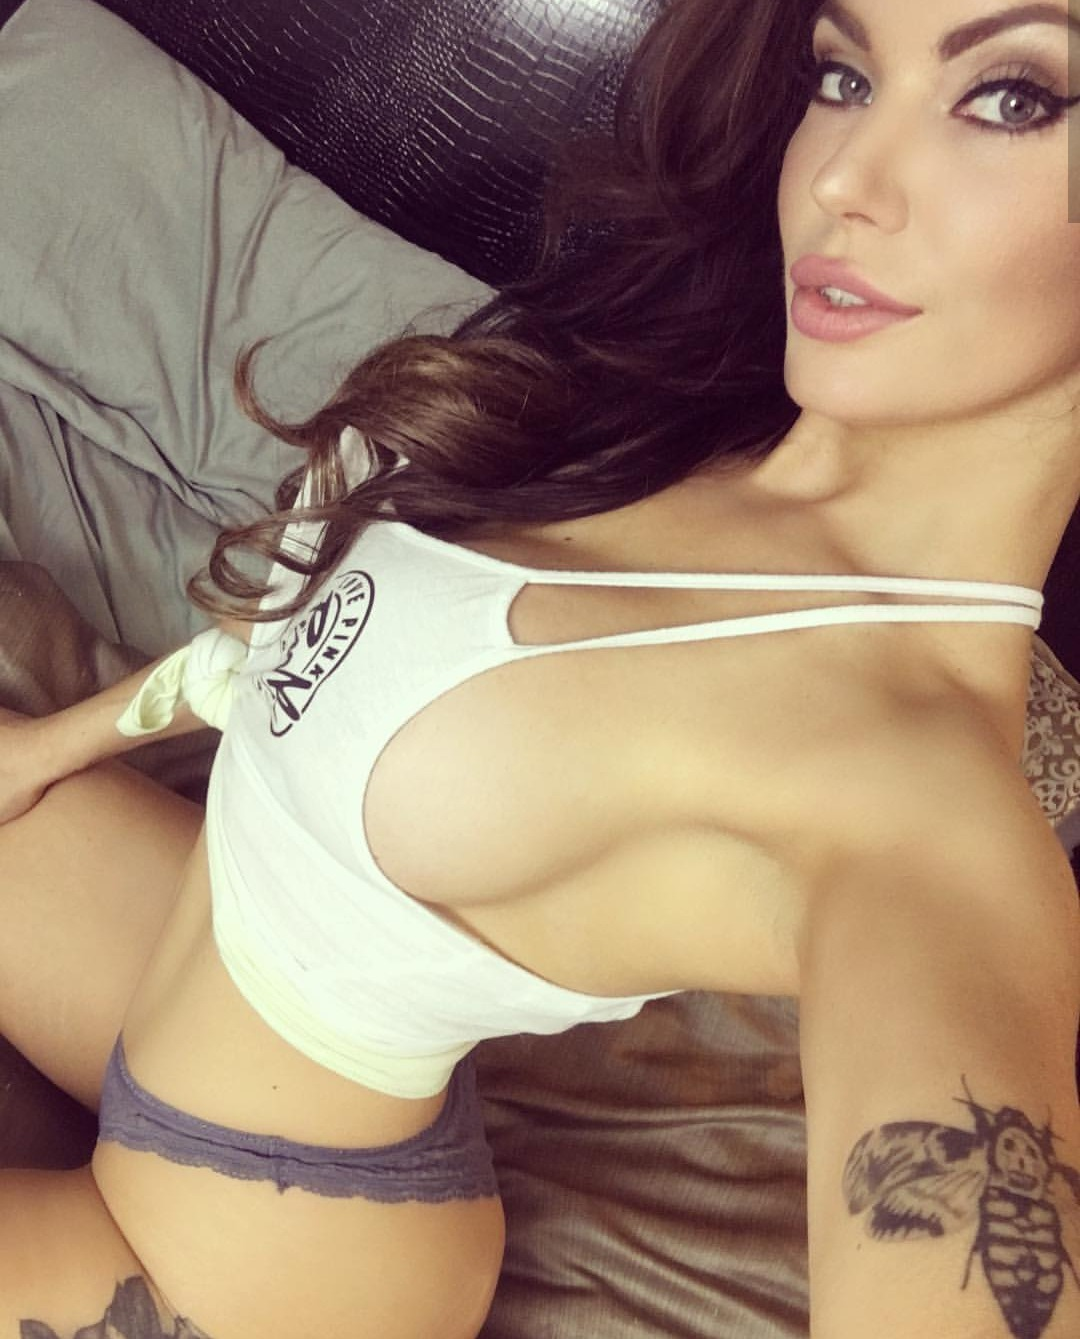 FLBP comin' in hot and robust as ever!